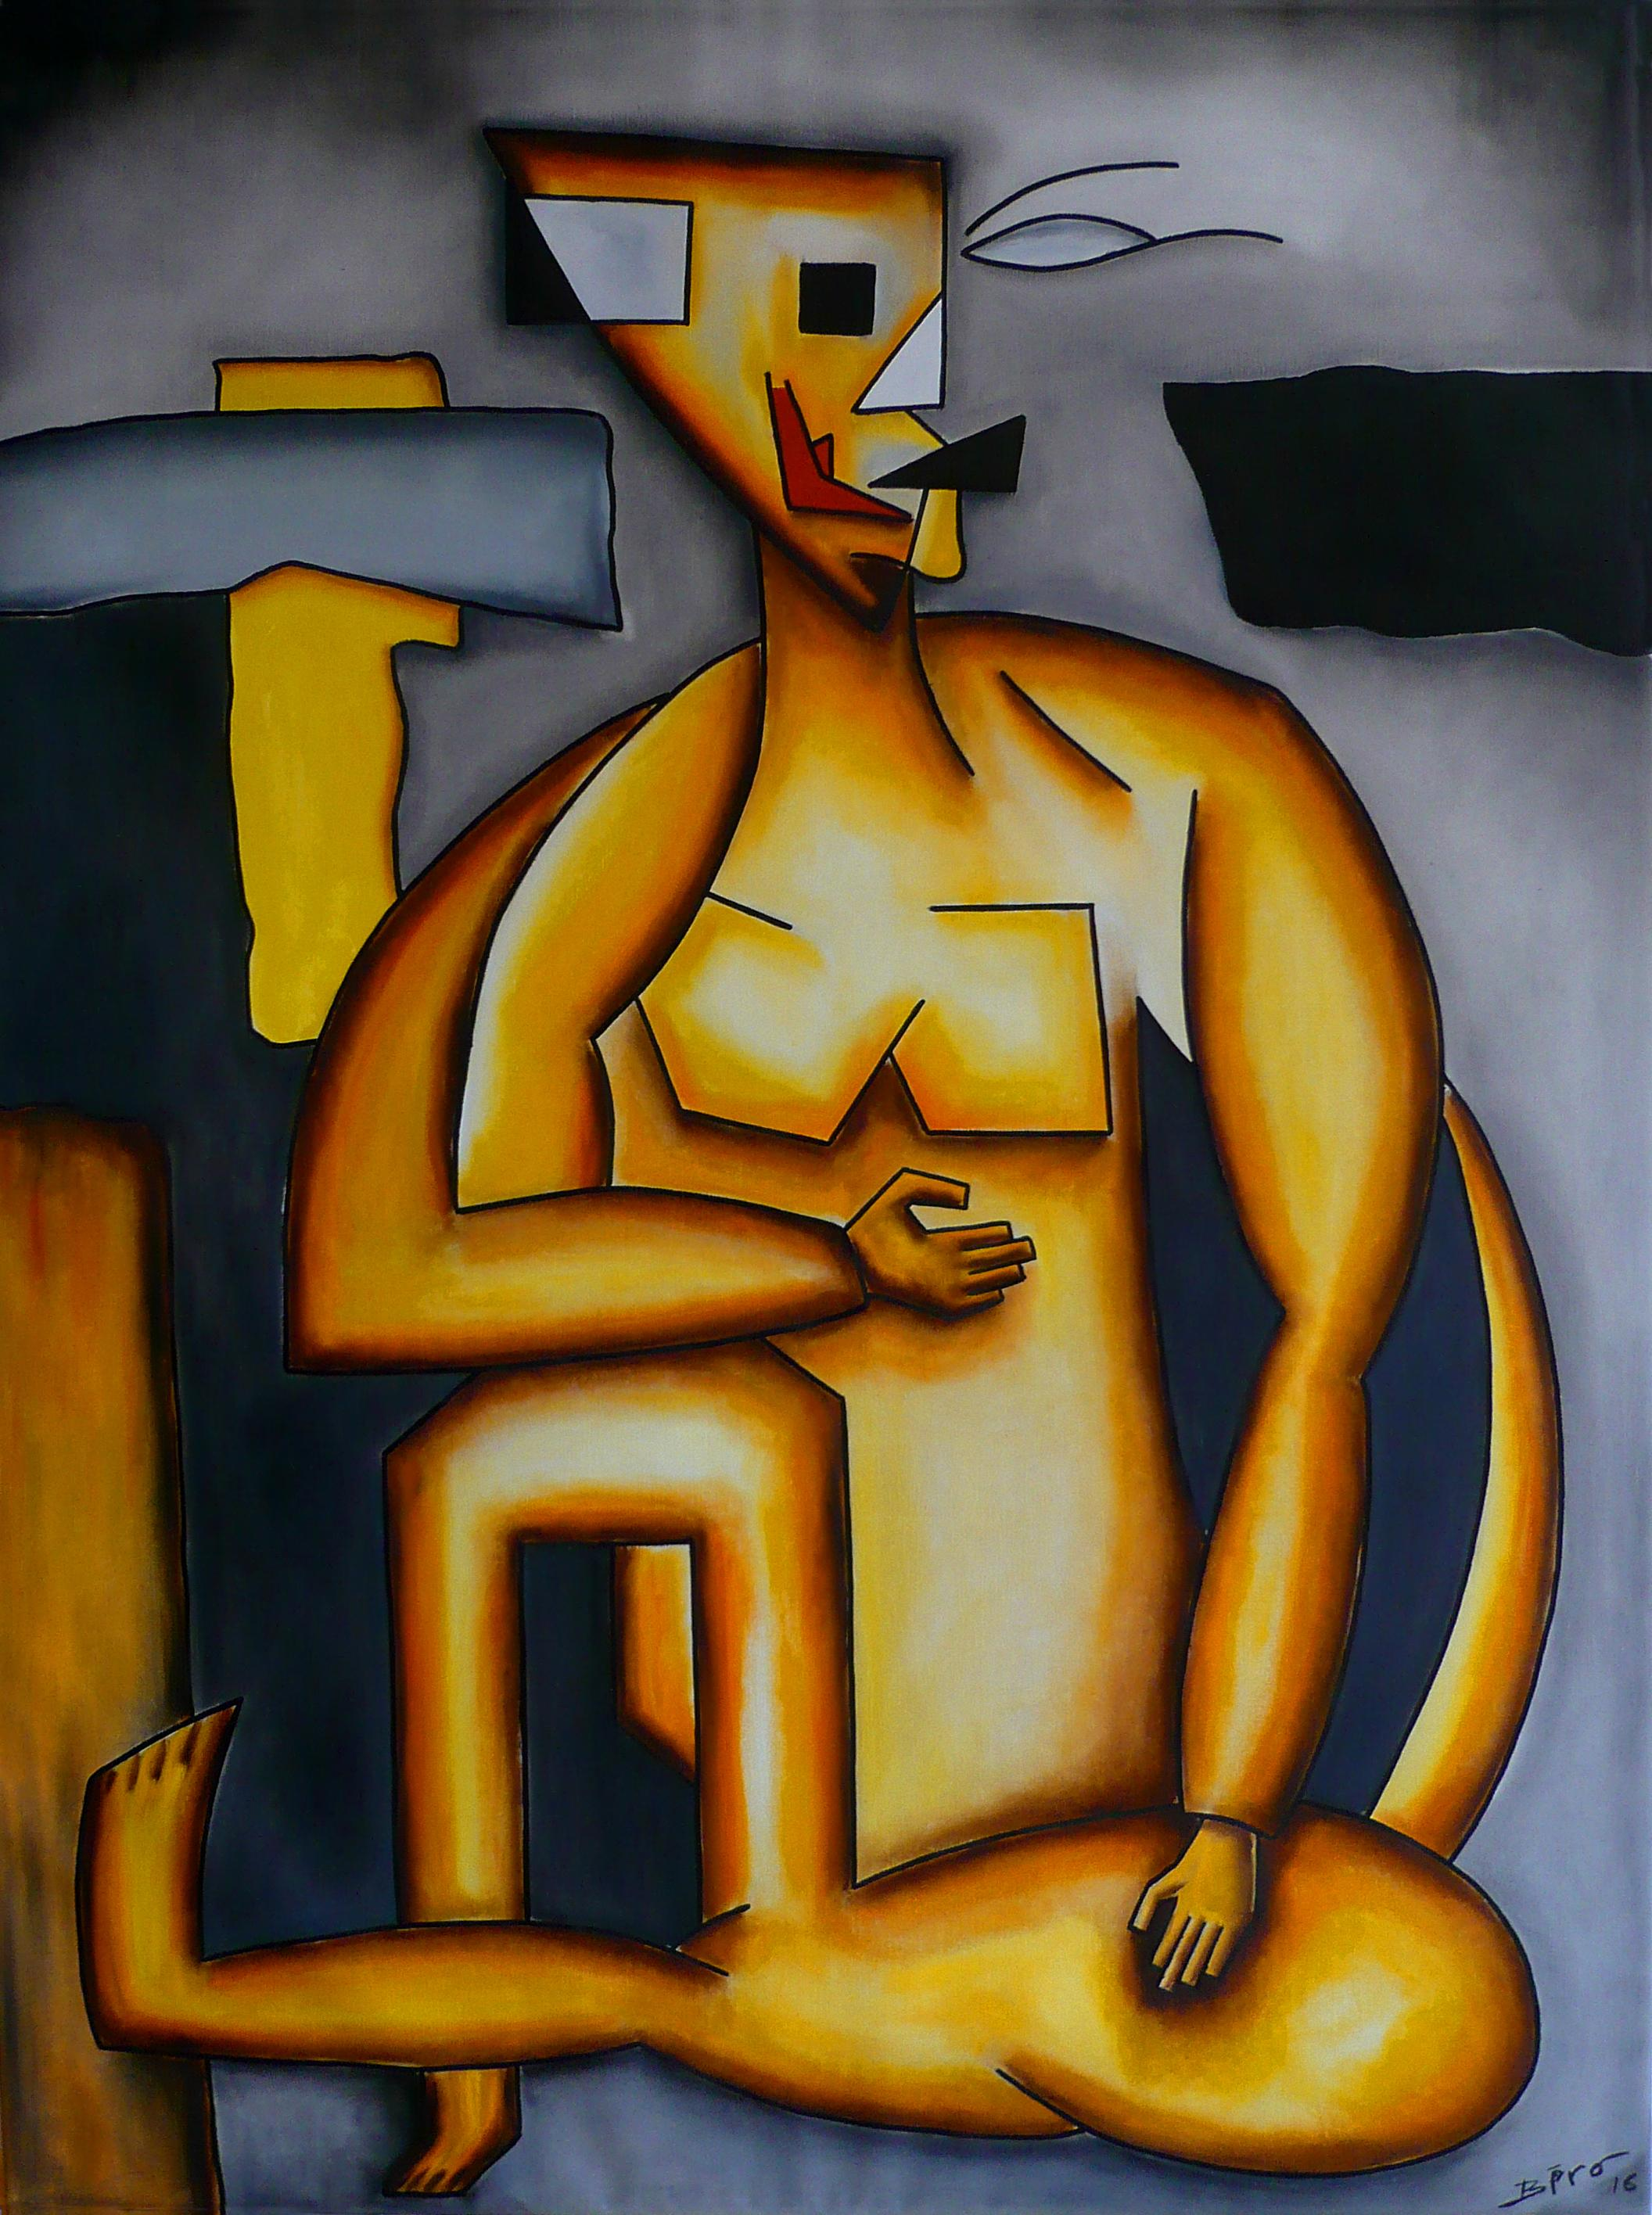 Neo-Cubist Woman, Oil on Canvas, Contemporary Cubism Oil Painting, 2016